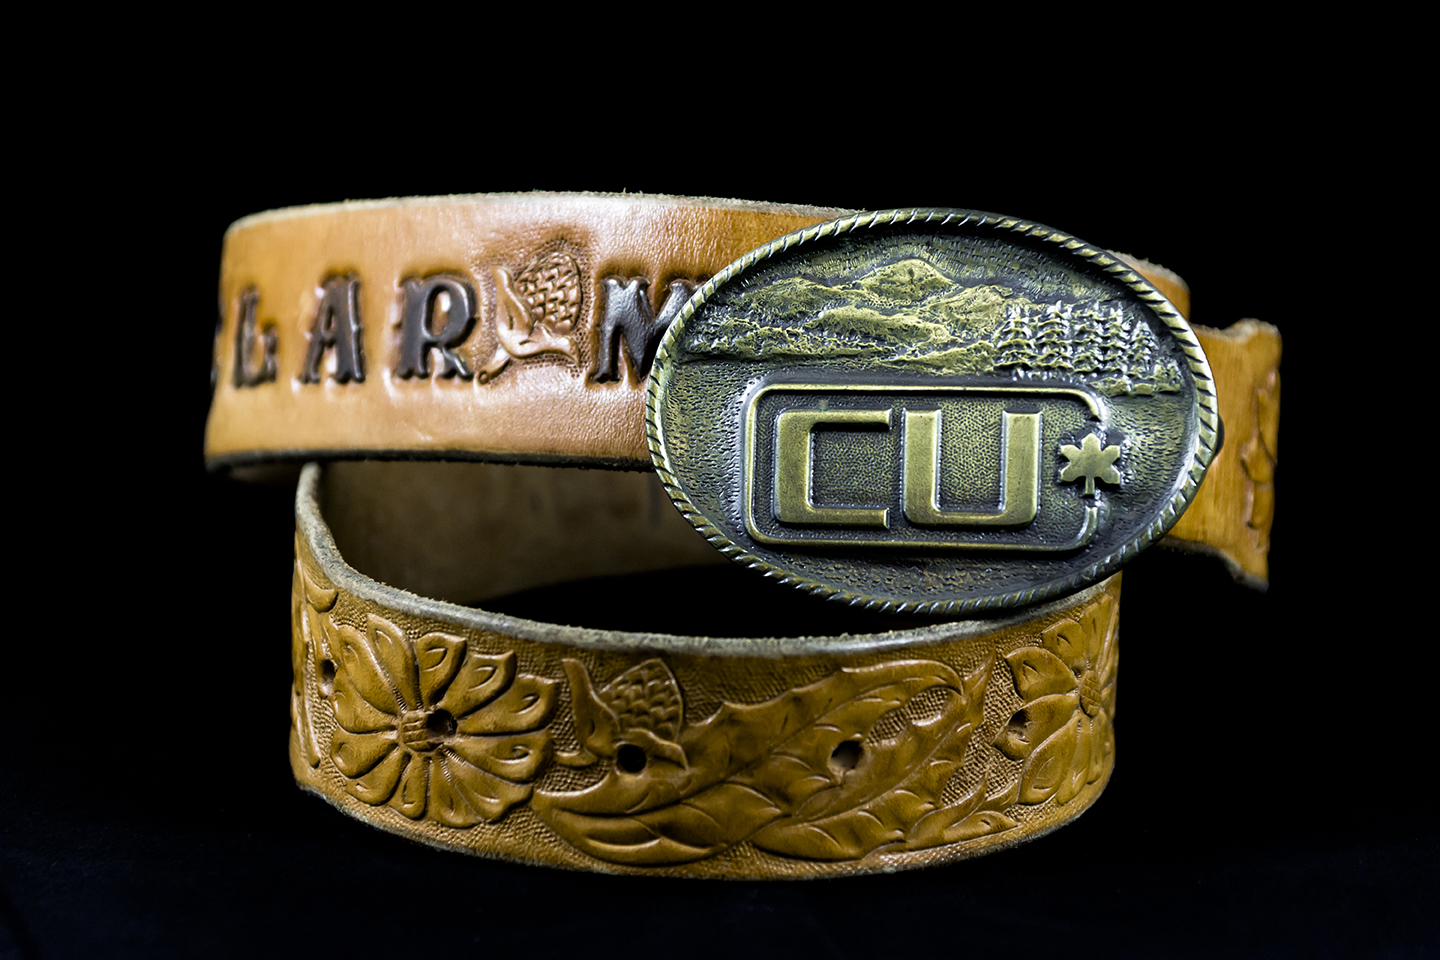 Clar Manning Belt With Cu Buckle Calgary Stampede